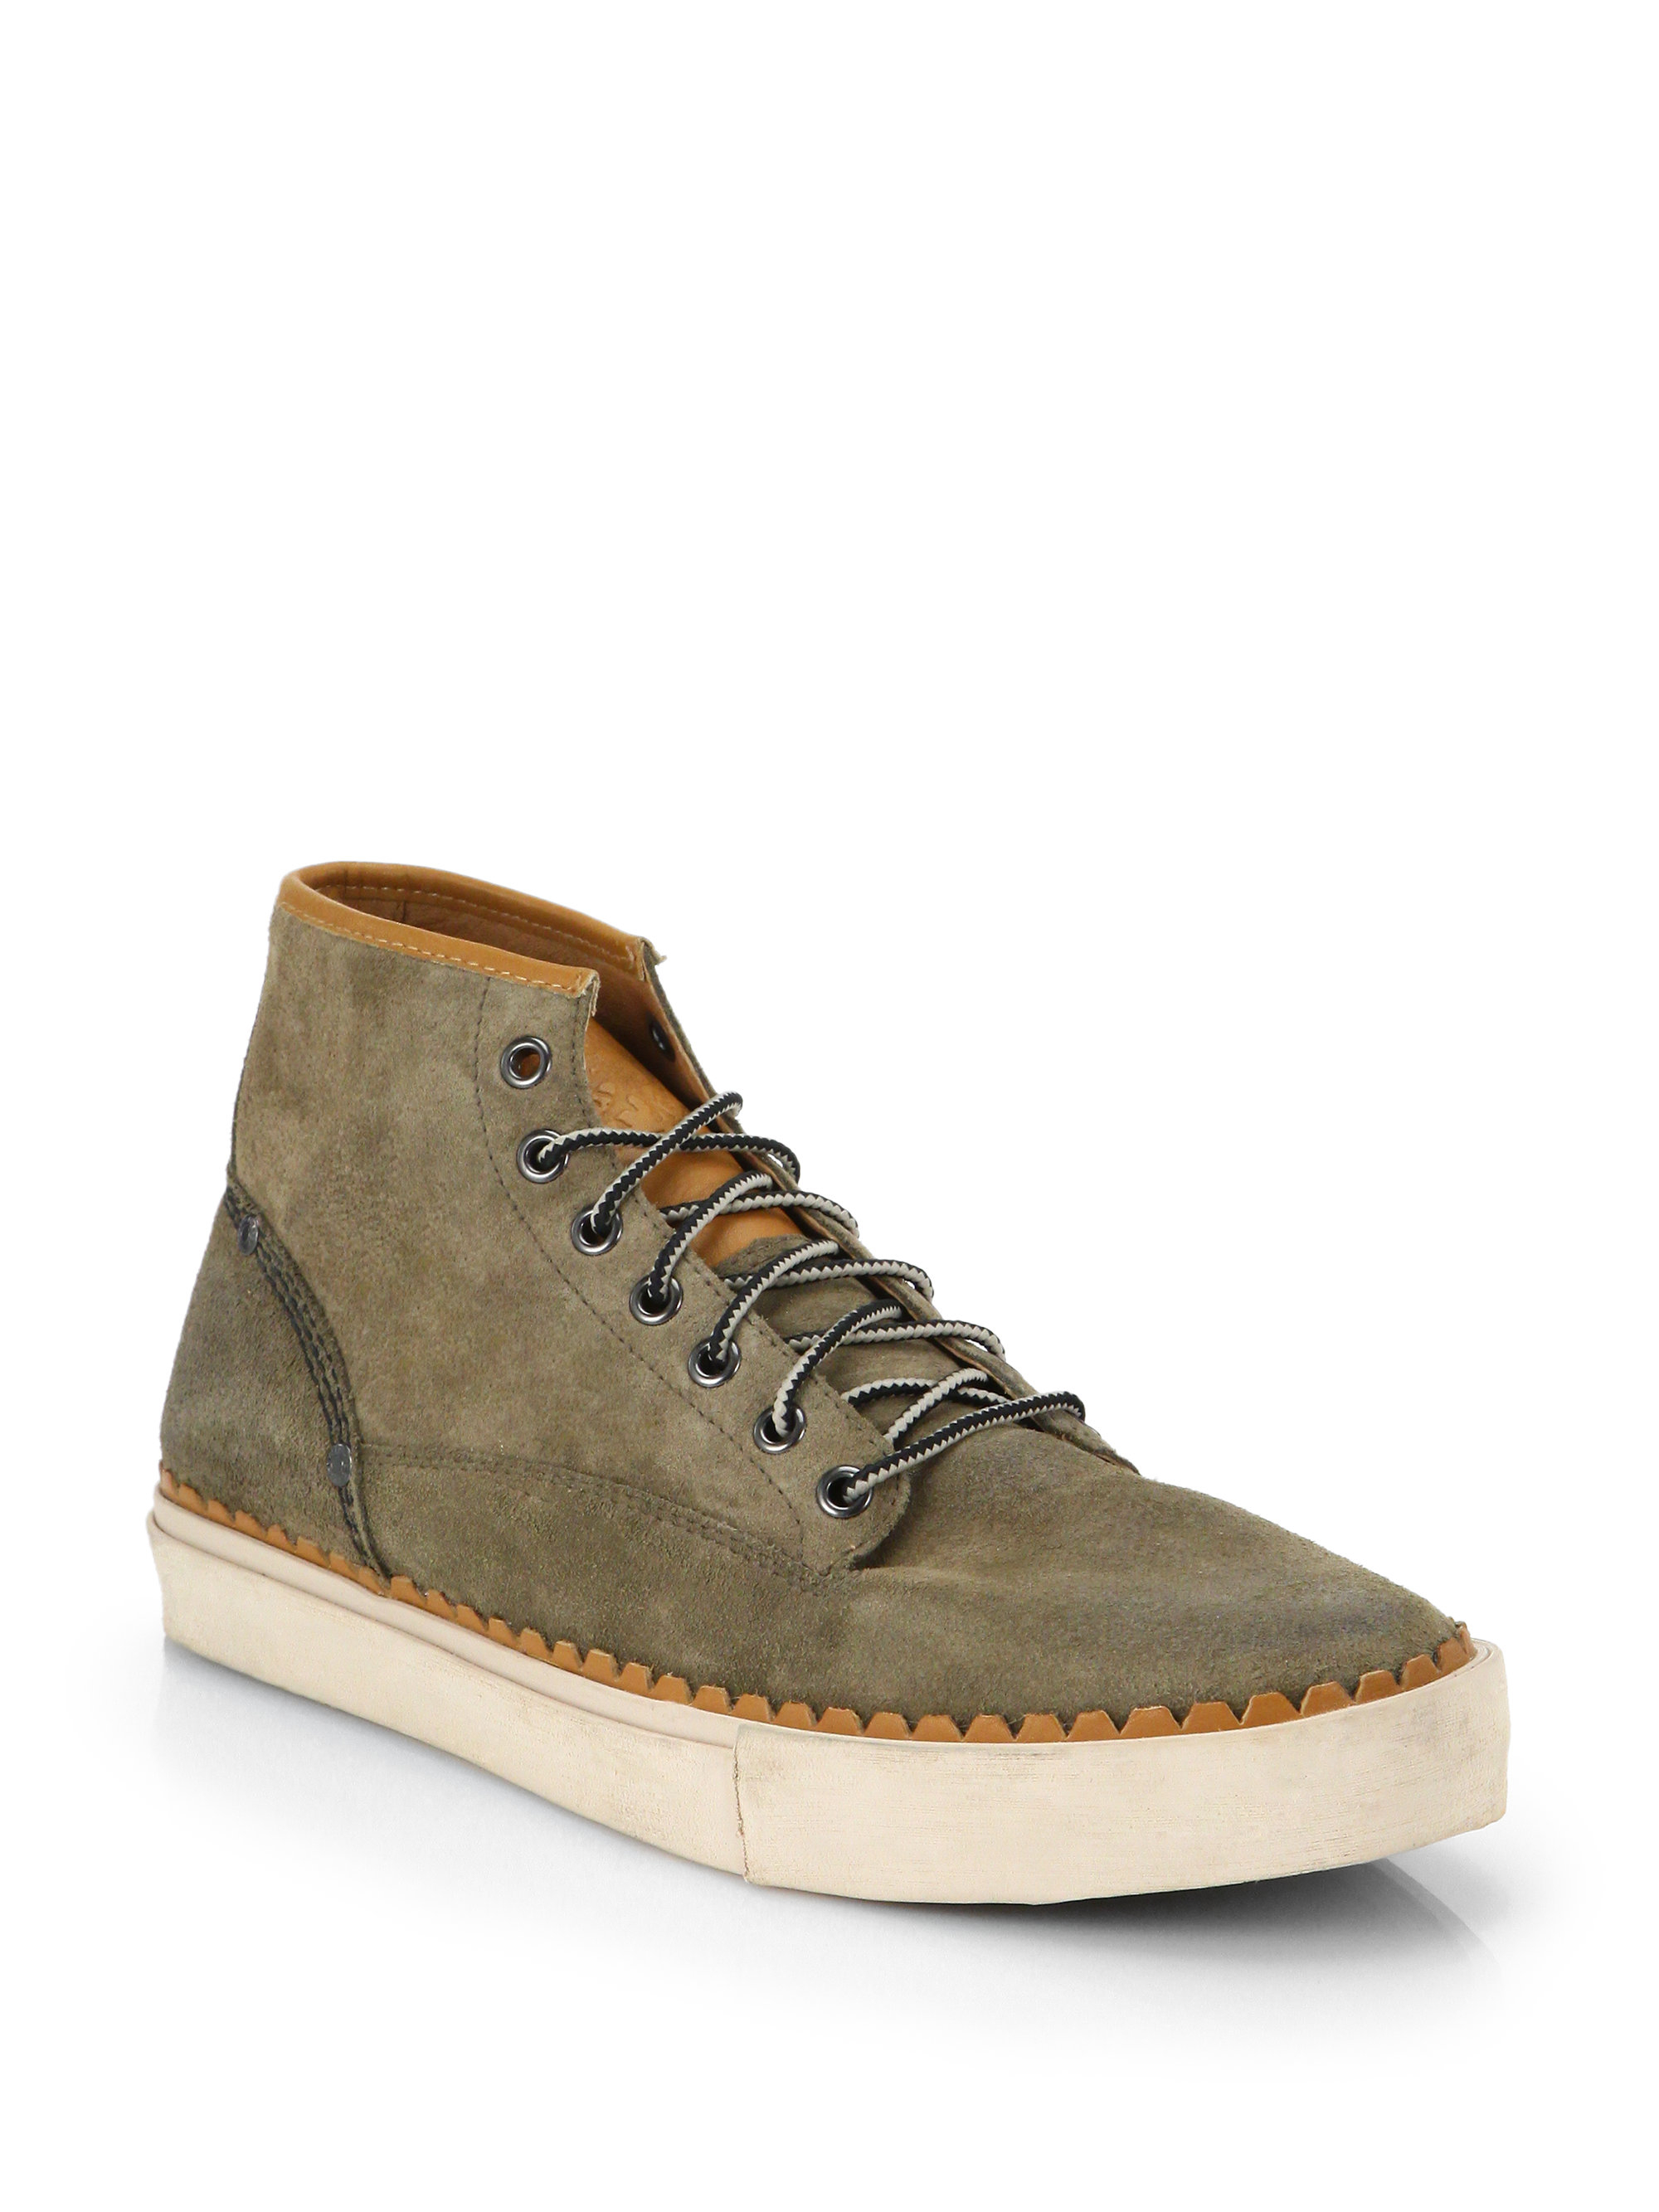 Diesel The Pager Watchu Chukka Boots In Green For Men Lyst